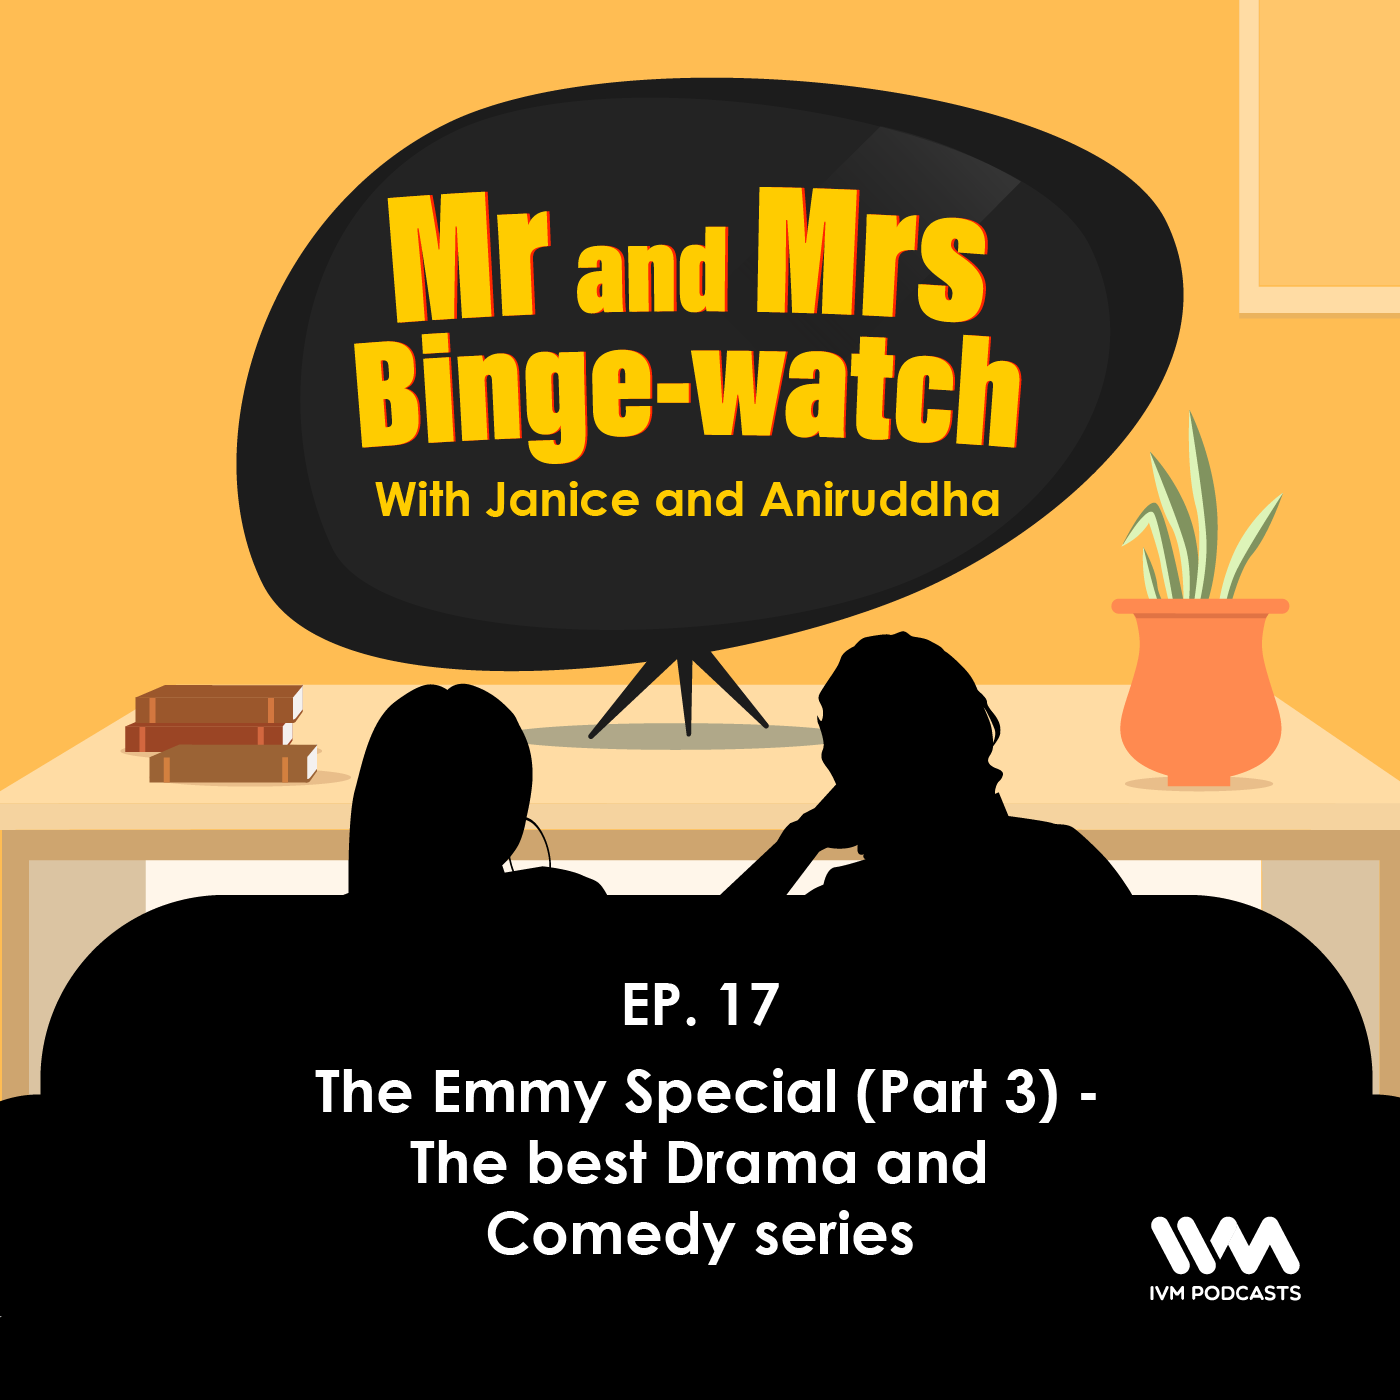 Ep. 17: The Emmy Special (Part 3) - The best Drama and Comedy series